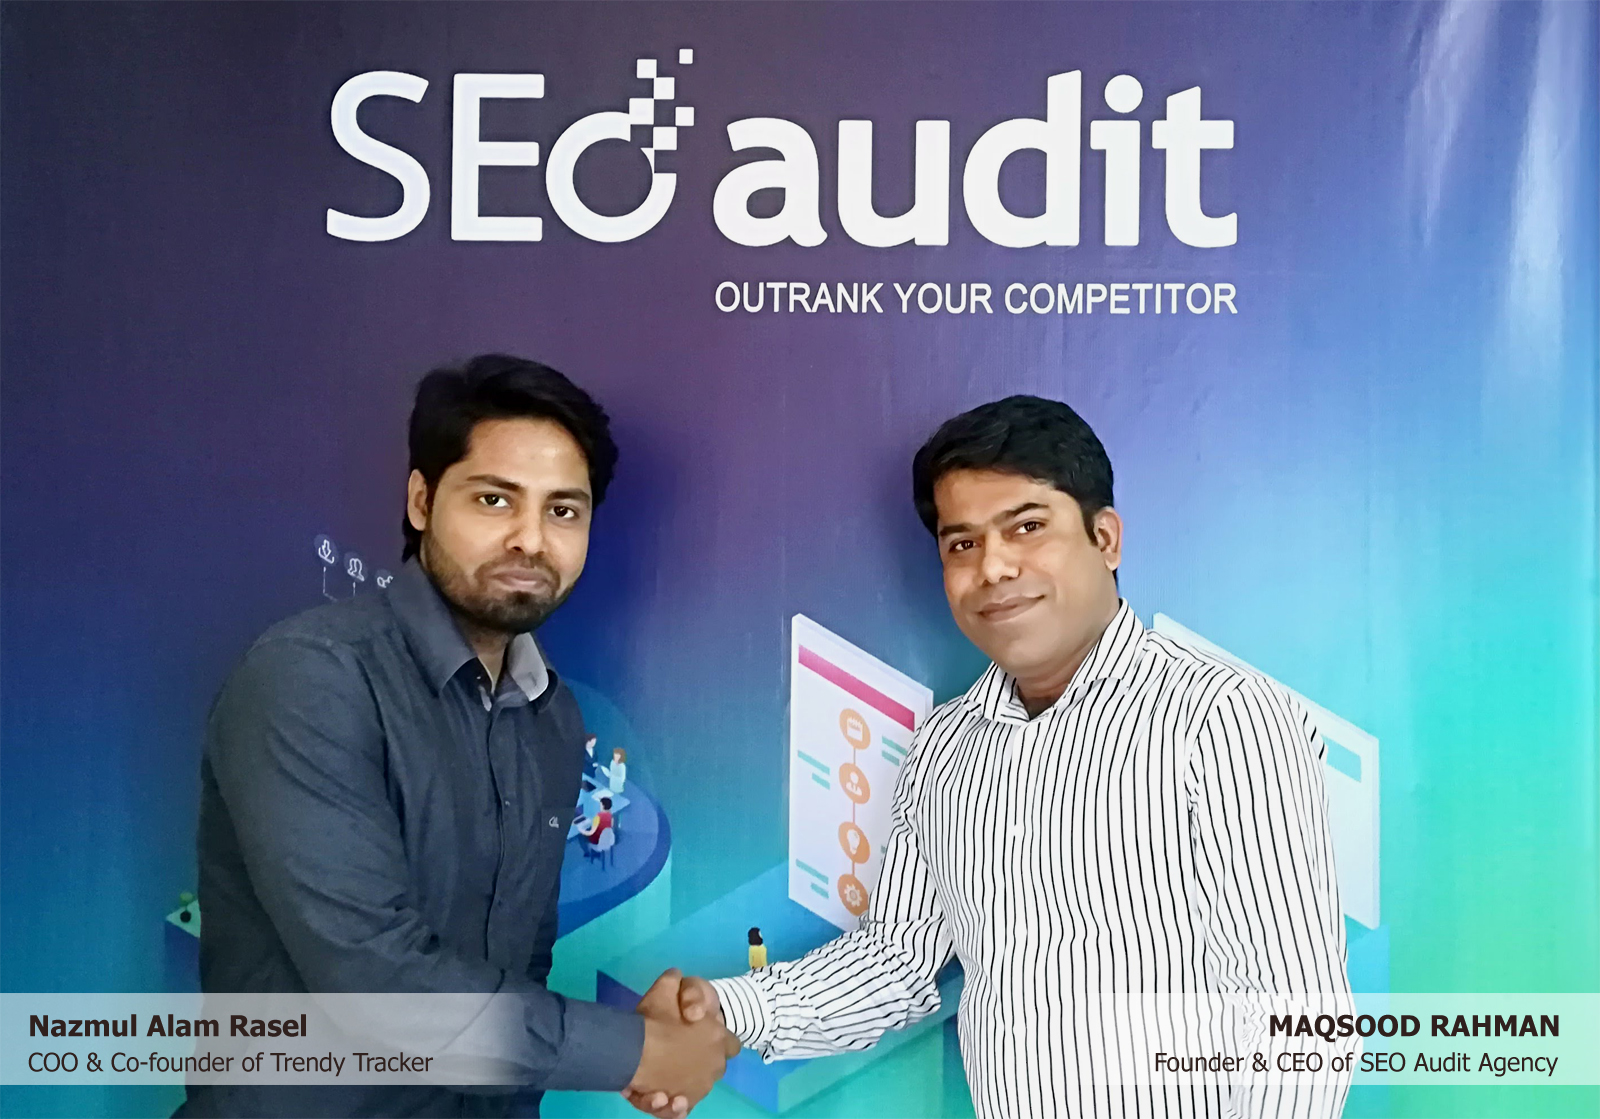 Maqsood Rahman & Nazmul Alam Rasel at SEO Audit Agency